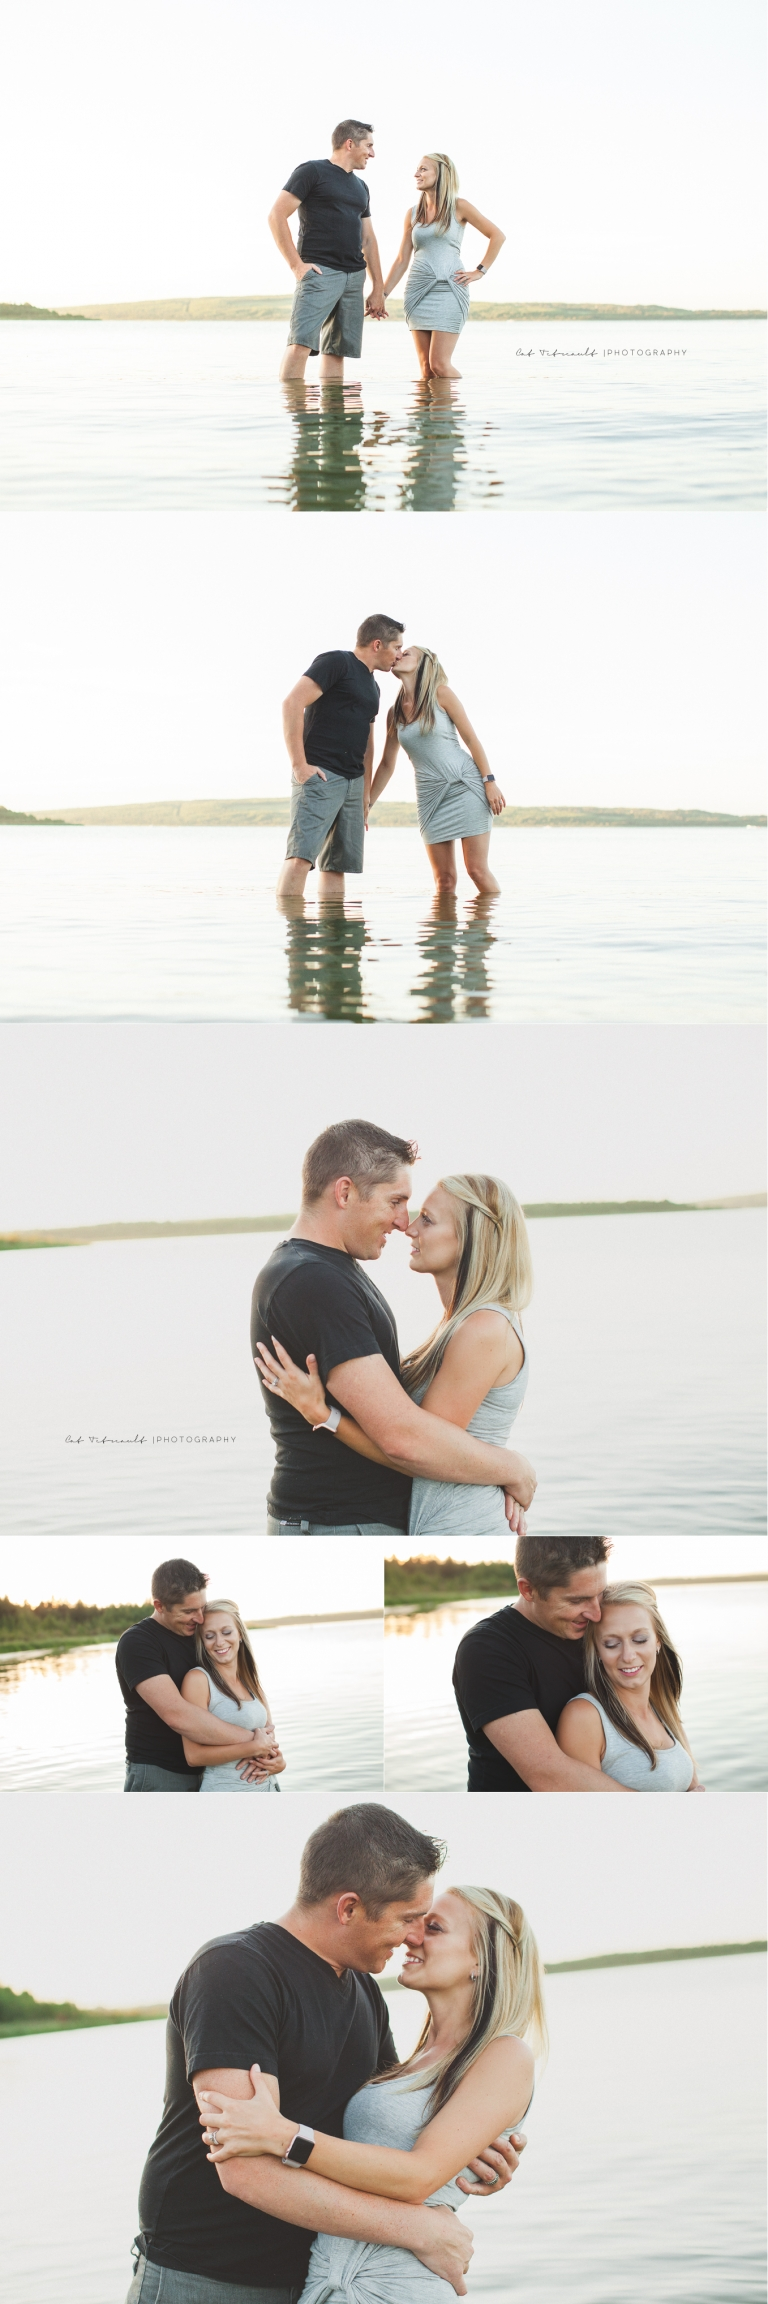 beachengagement6